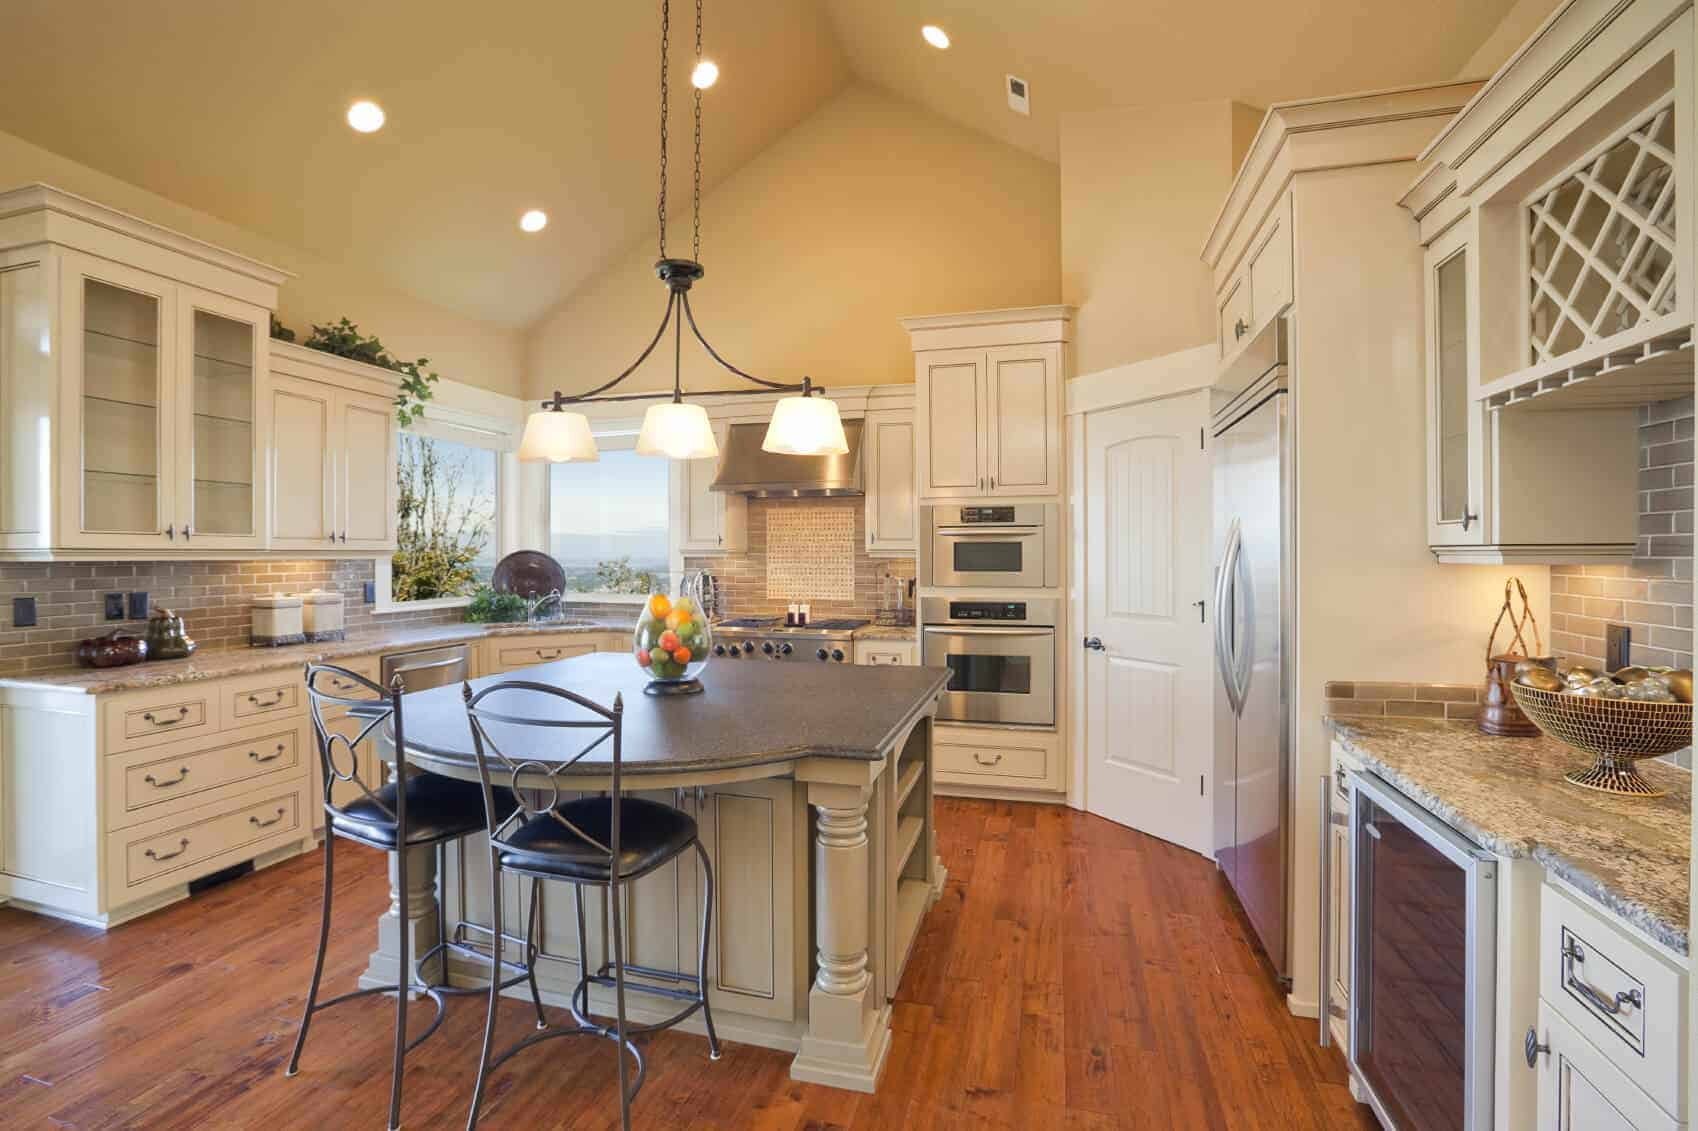 This kitchen has a tall vaulted ceiling with a pendant lighting hanging from the top. There's a center island as well with space for a breakfast bar.